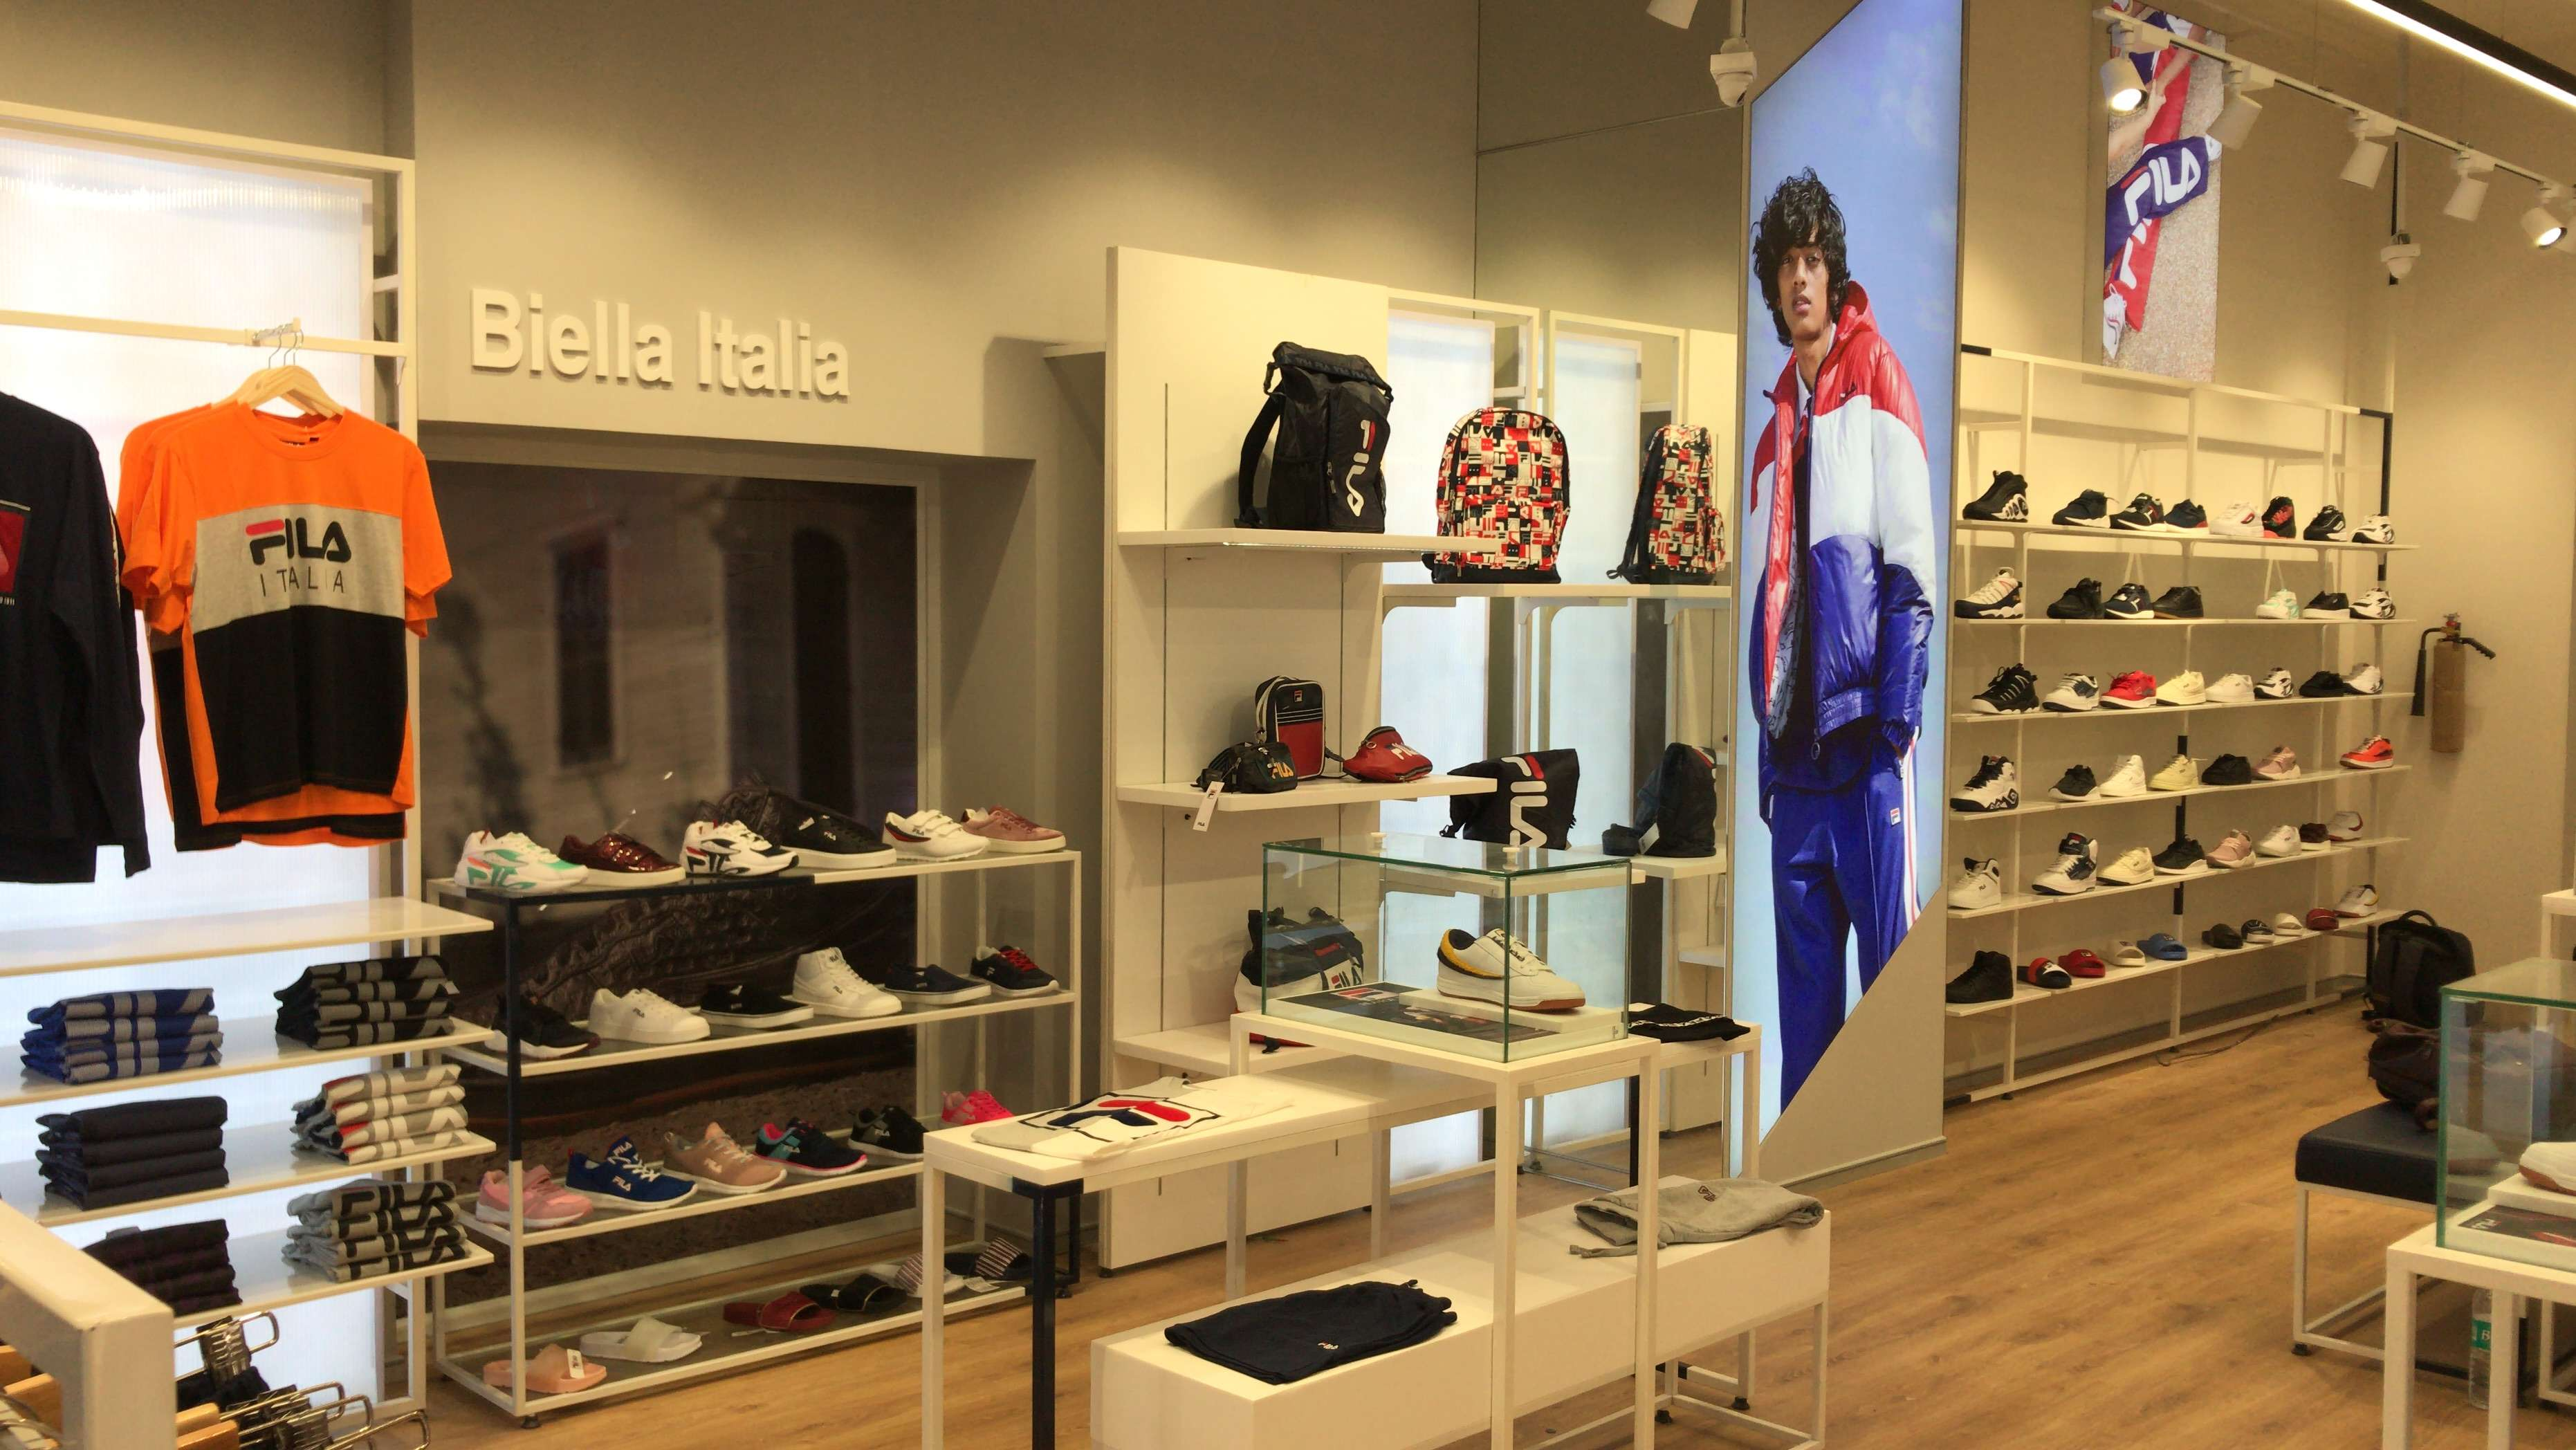 Estación de ferrocarril Desarrollar coser  Italian sports fashion brand FILA to open 100 exclusive retail stores in  India over the next 5 years, Marketing & Advertising News, ET BrandEquity